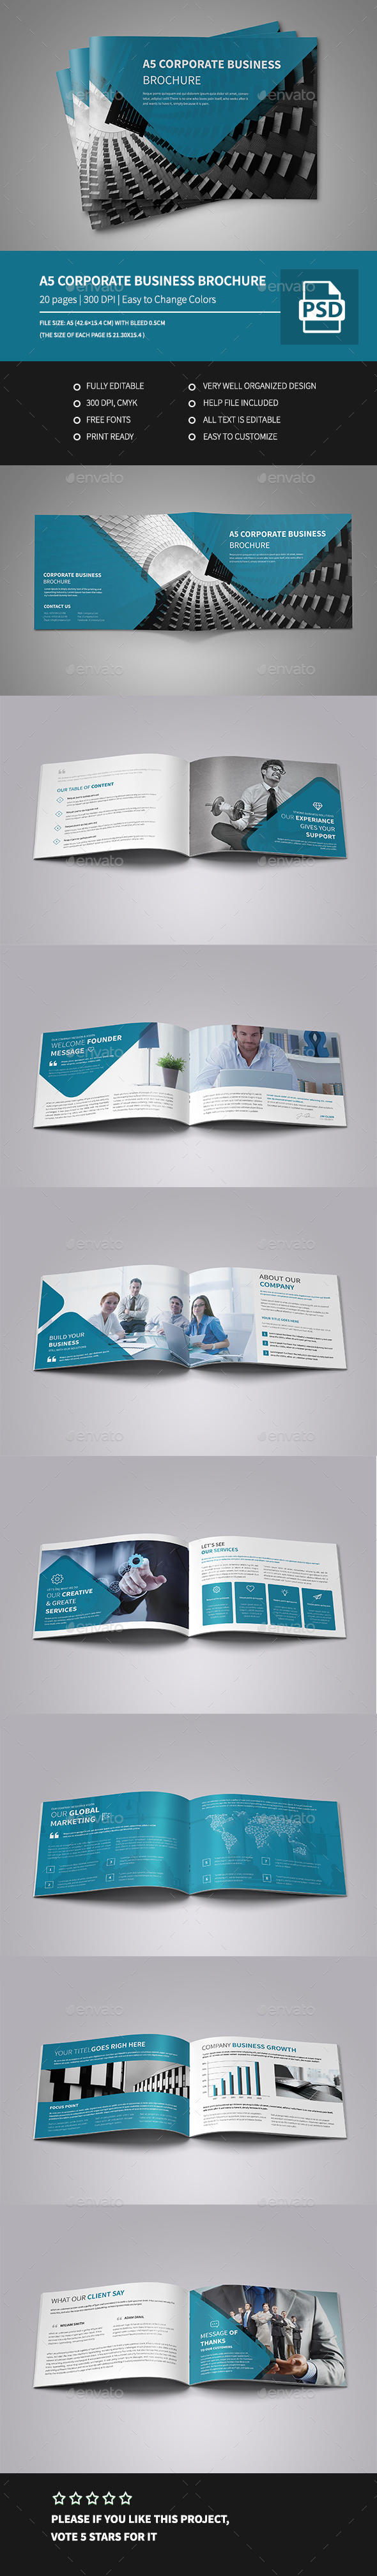 A5 Corporate Business Landscape Brochure - Corporate Brochures